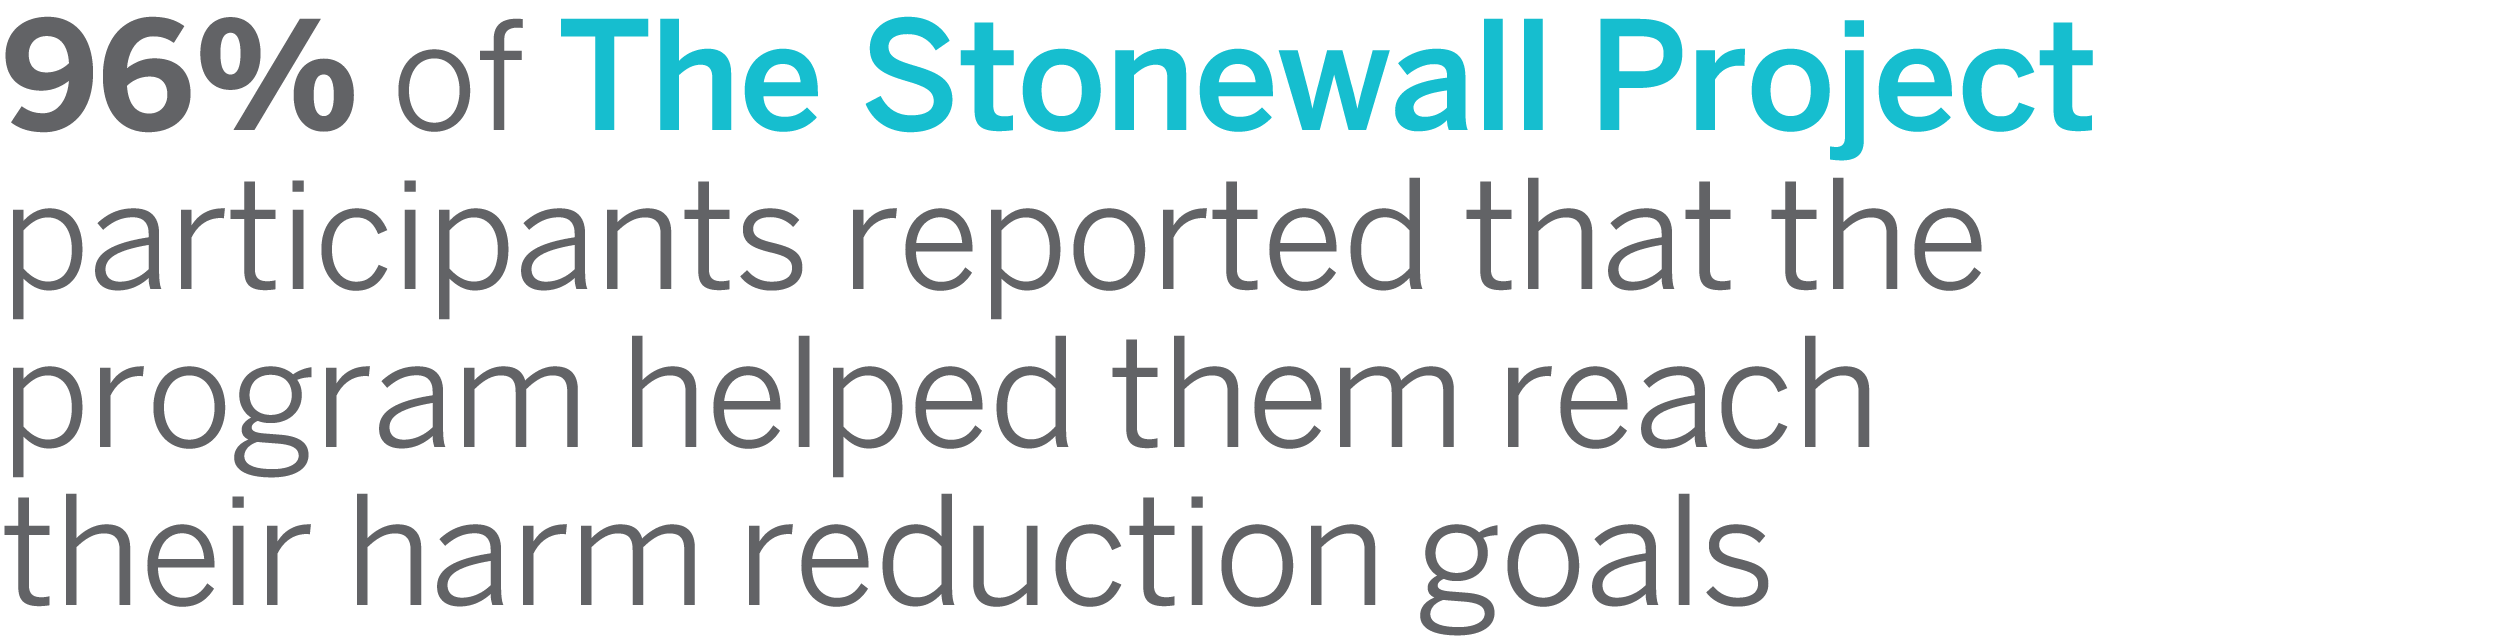 96% of The Stonewall Project participants reported that the program helped them reach their harm reduction goals